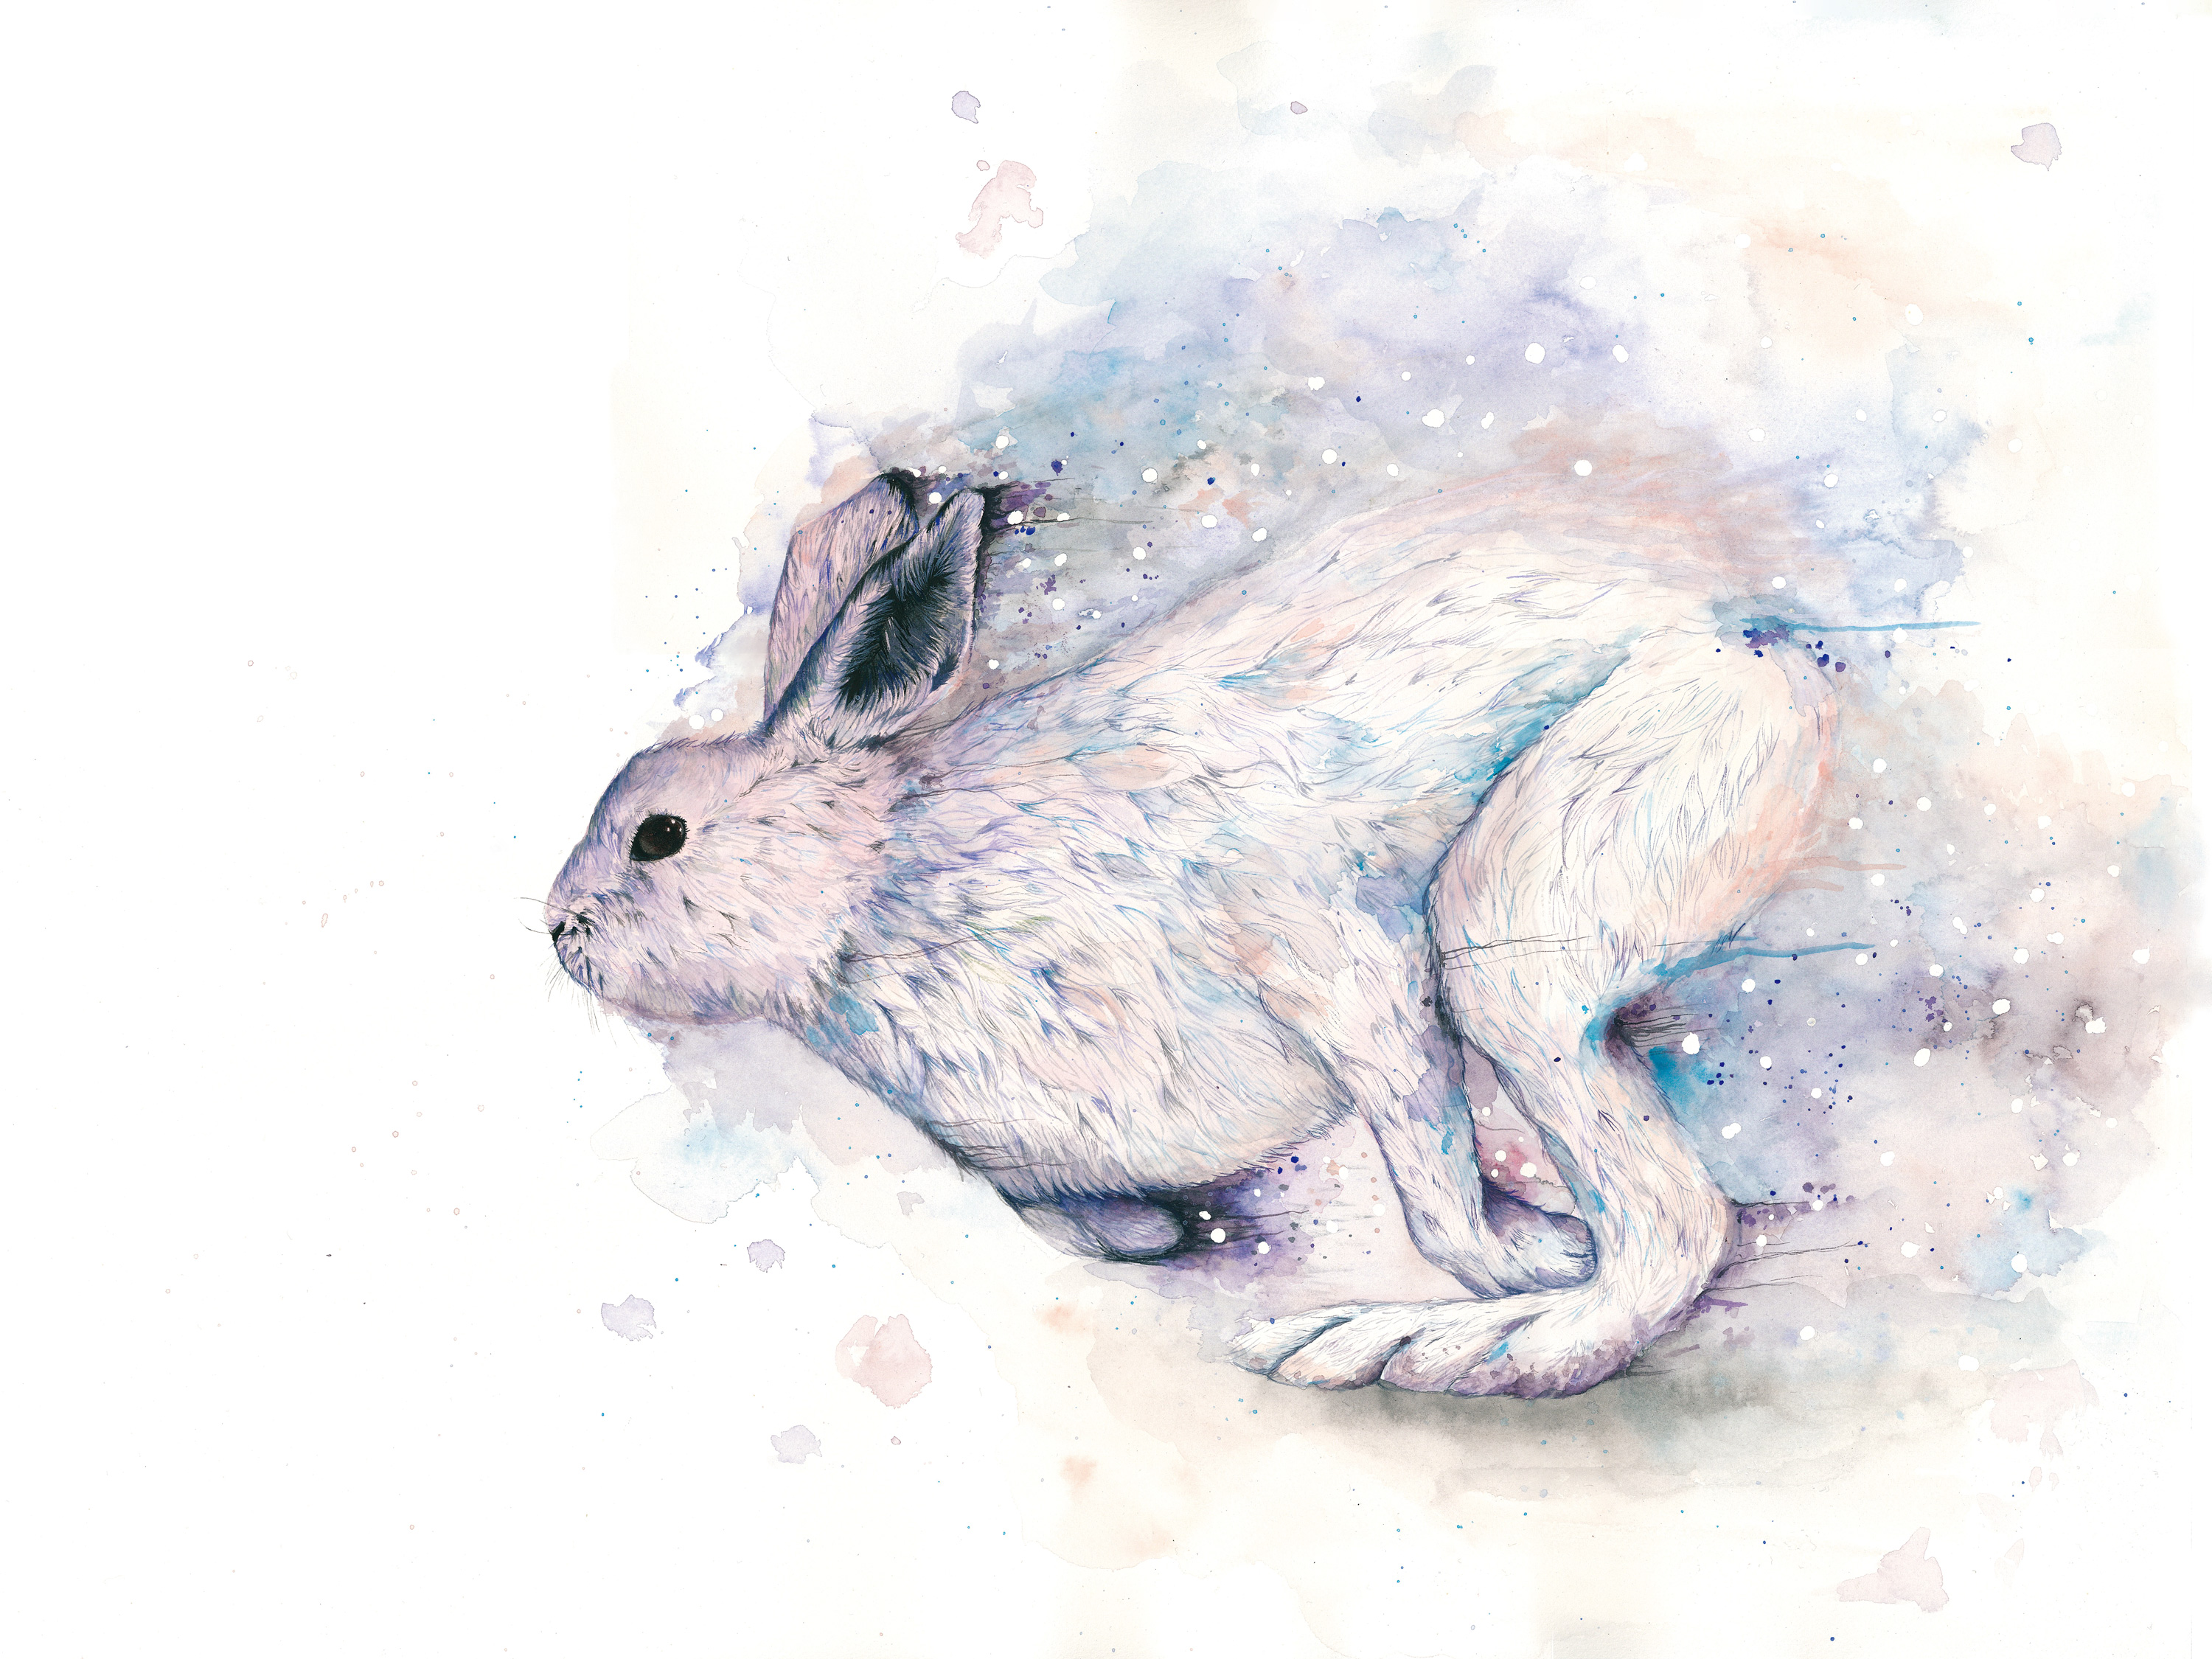 「Mountain rabbit」